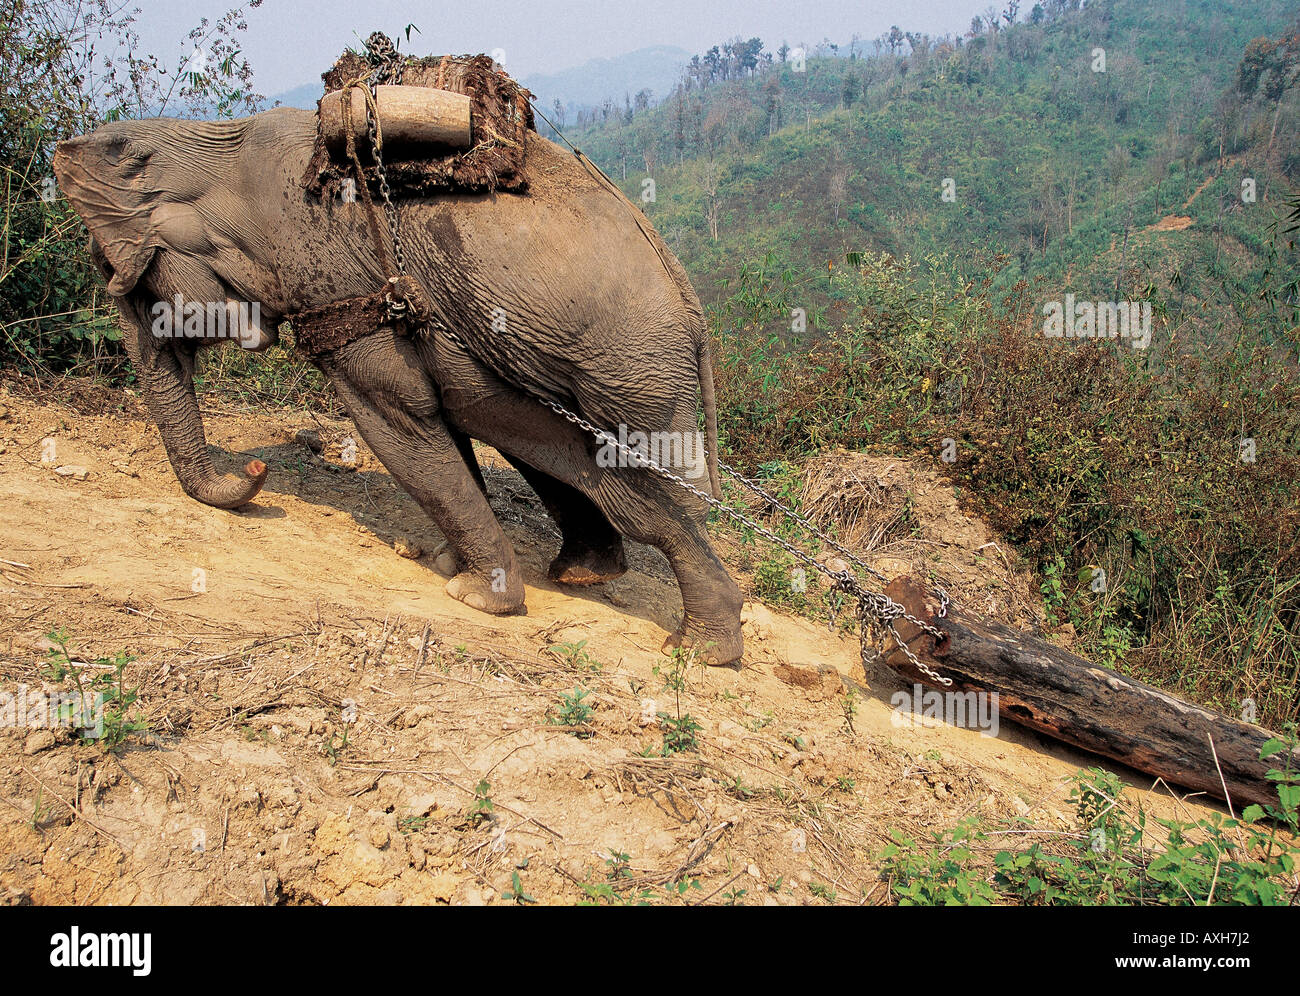 Asian Elephants Working In Logging Industry In Rainforests